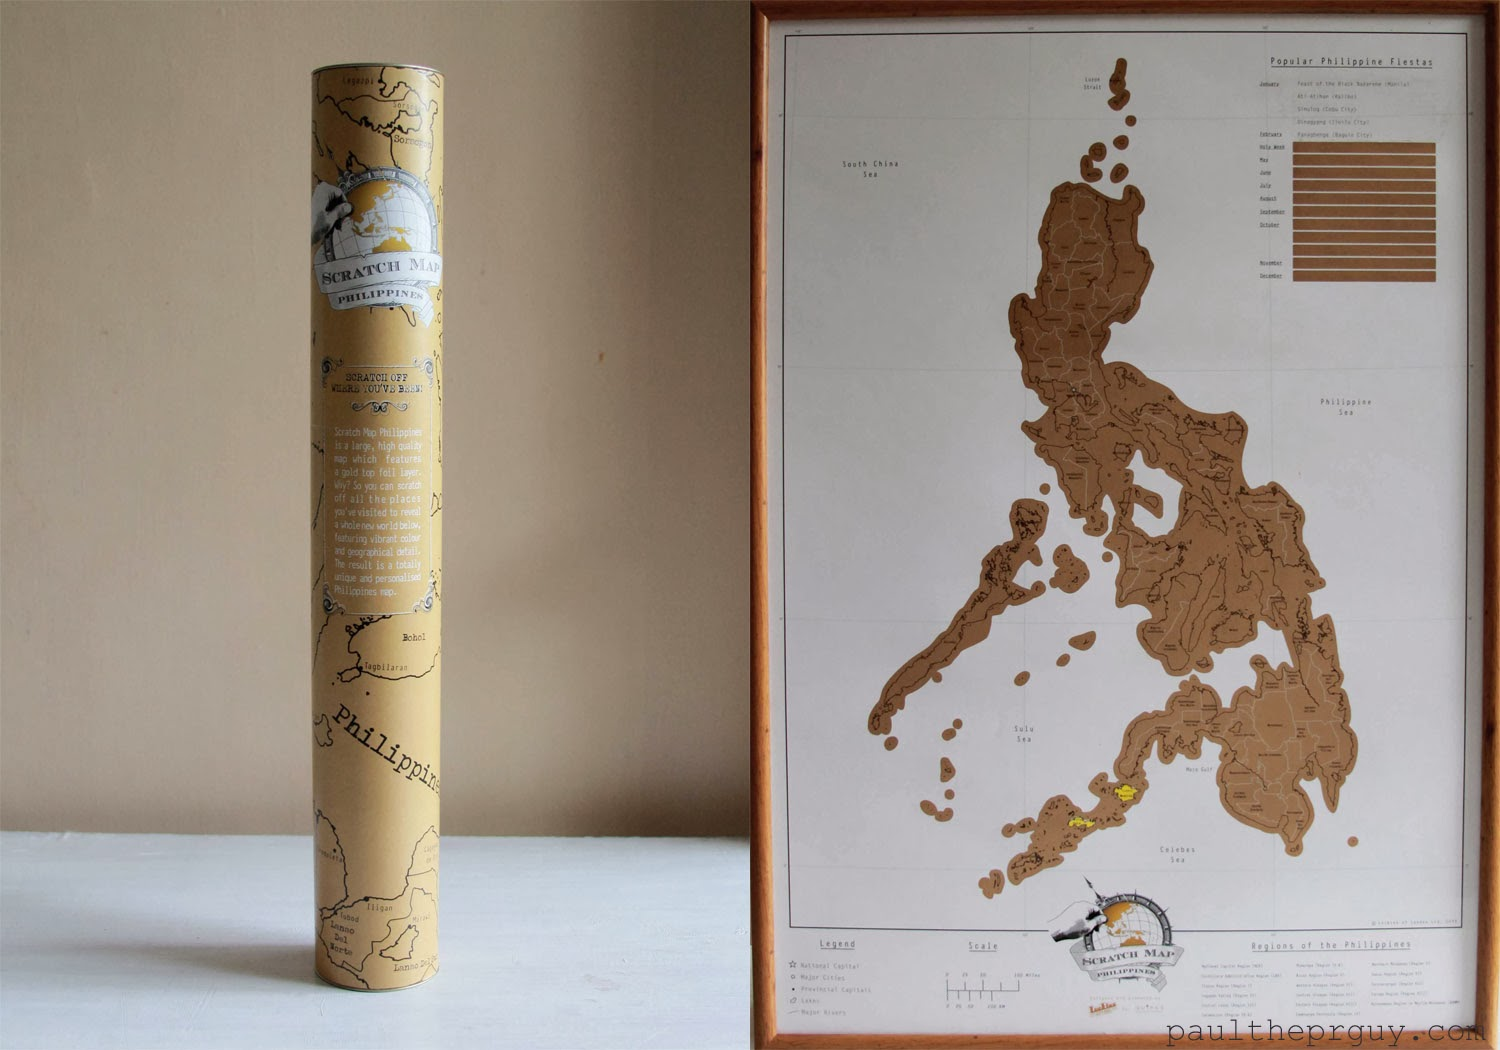 3acdb8eb37 So you can scratch off all the places you've visited to reveal a whole new  map below! The result is a totally unique and personalized Philippines map!